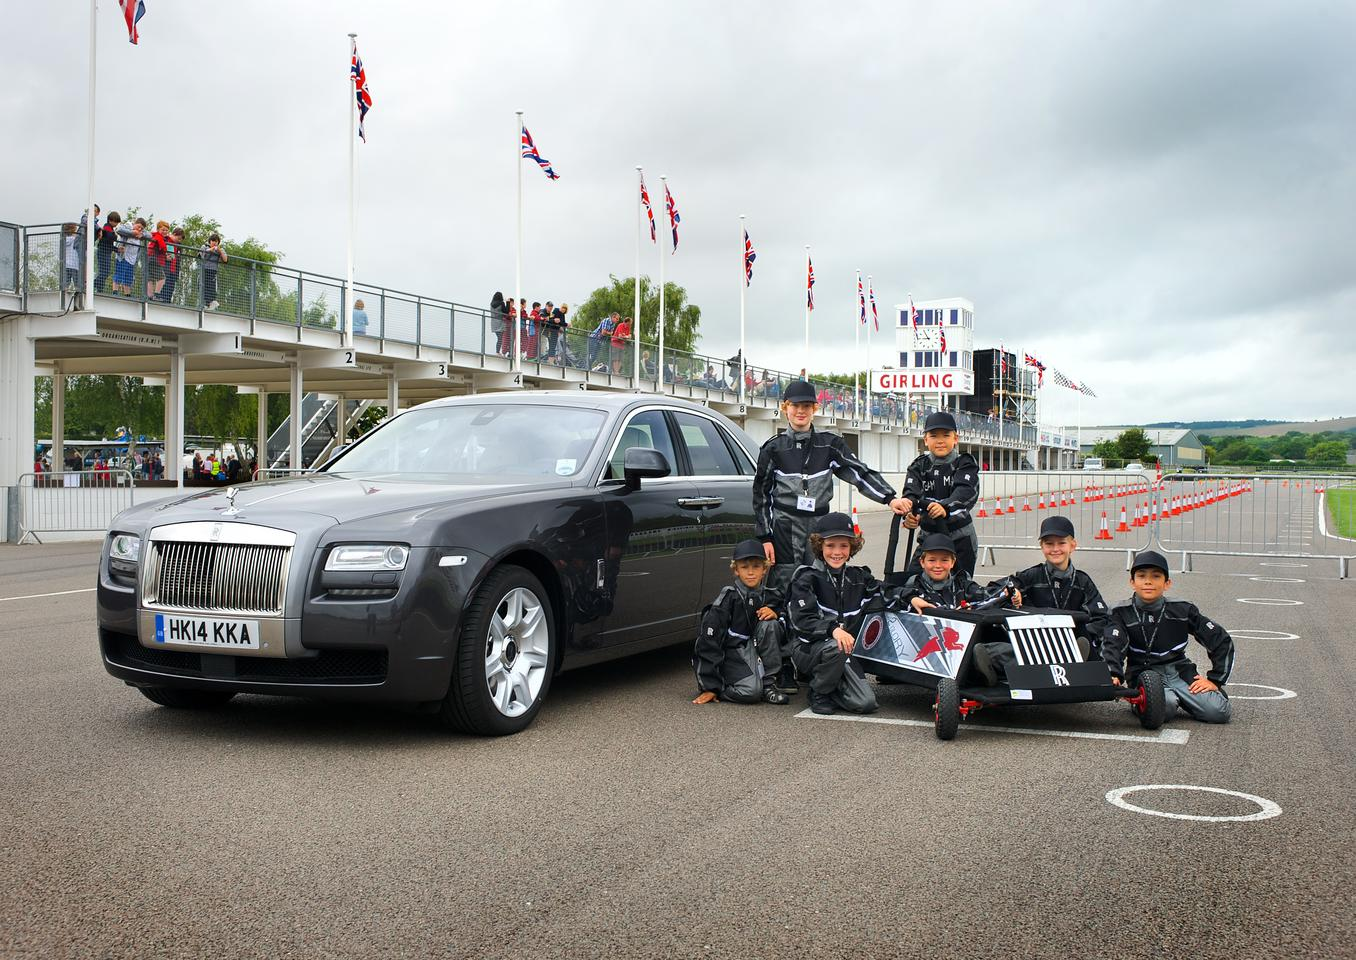 Rolls-Royce helped the local March CE Primary School compete in the Greenpower event